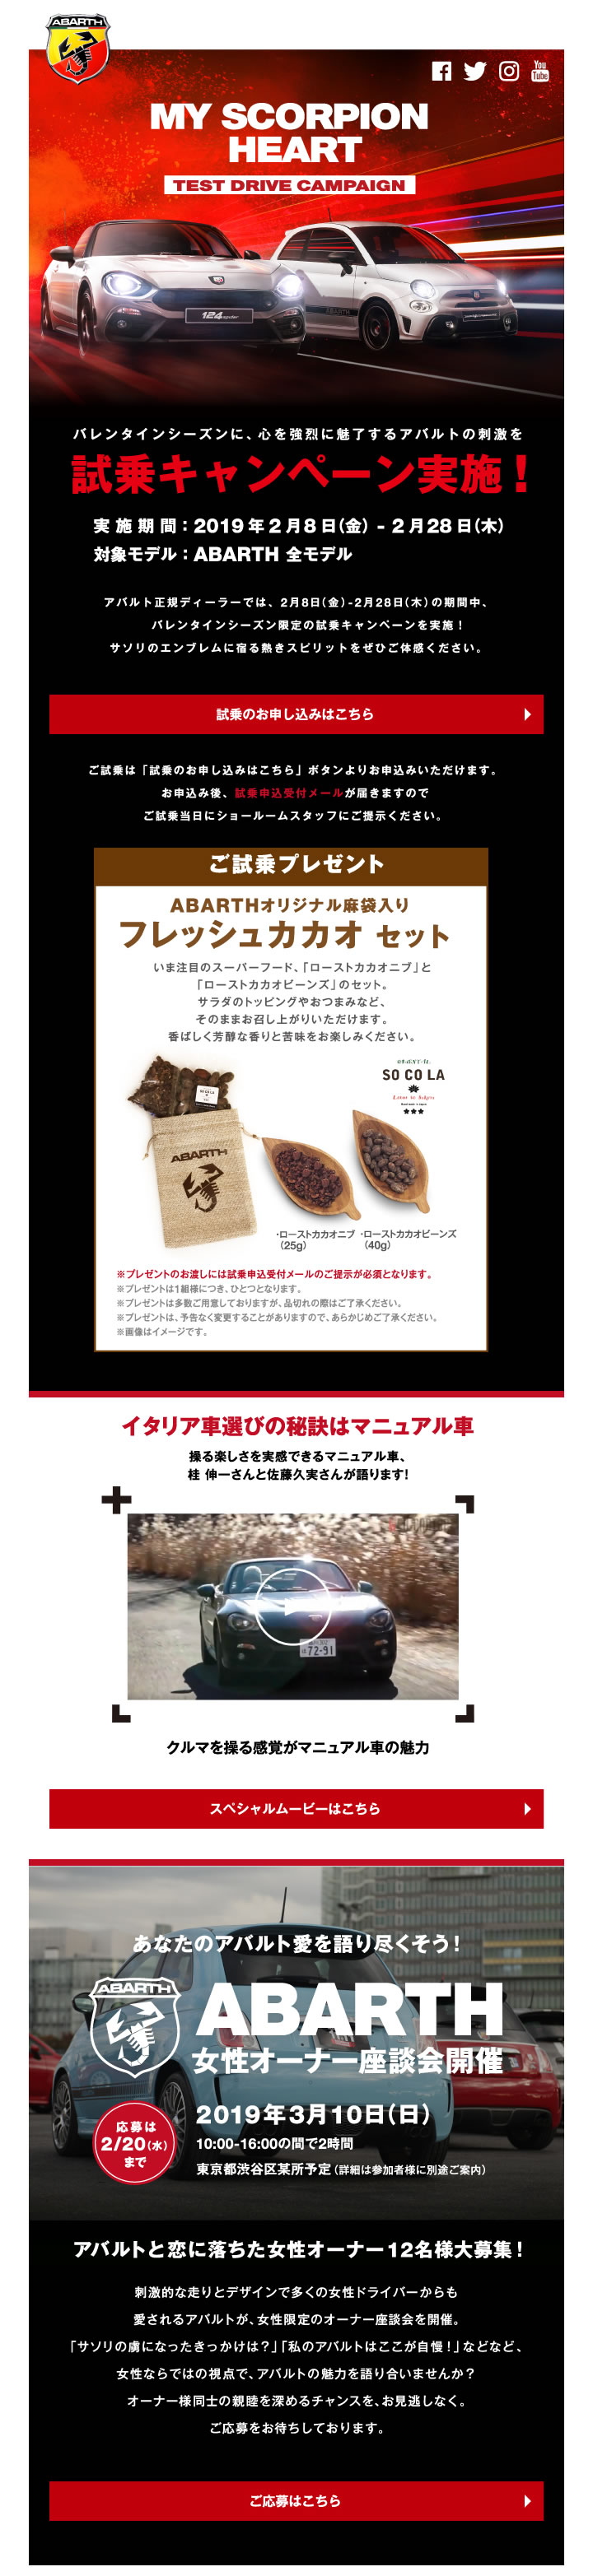 MY SCORPION HEART TEST DRIVE CAMPAIGN 2019年2月8日(金)-2月28日(木)